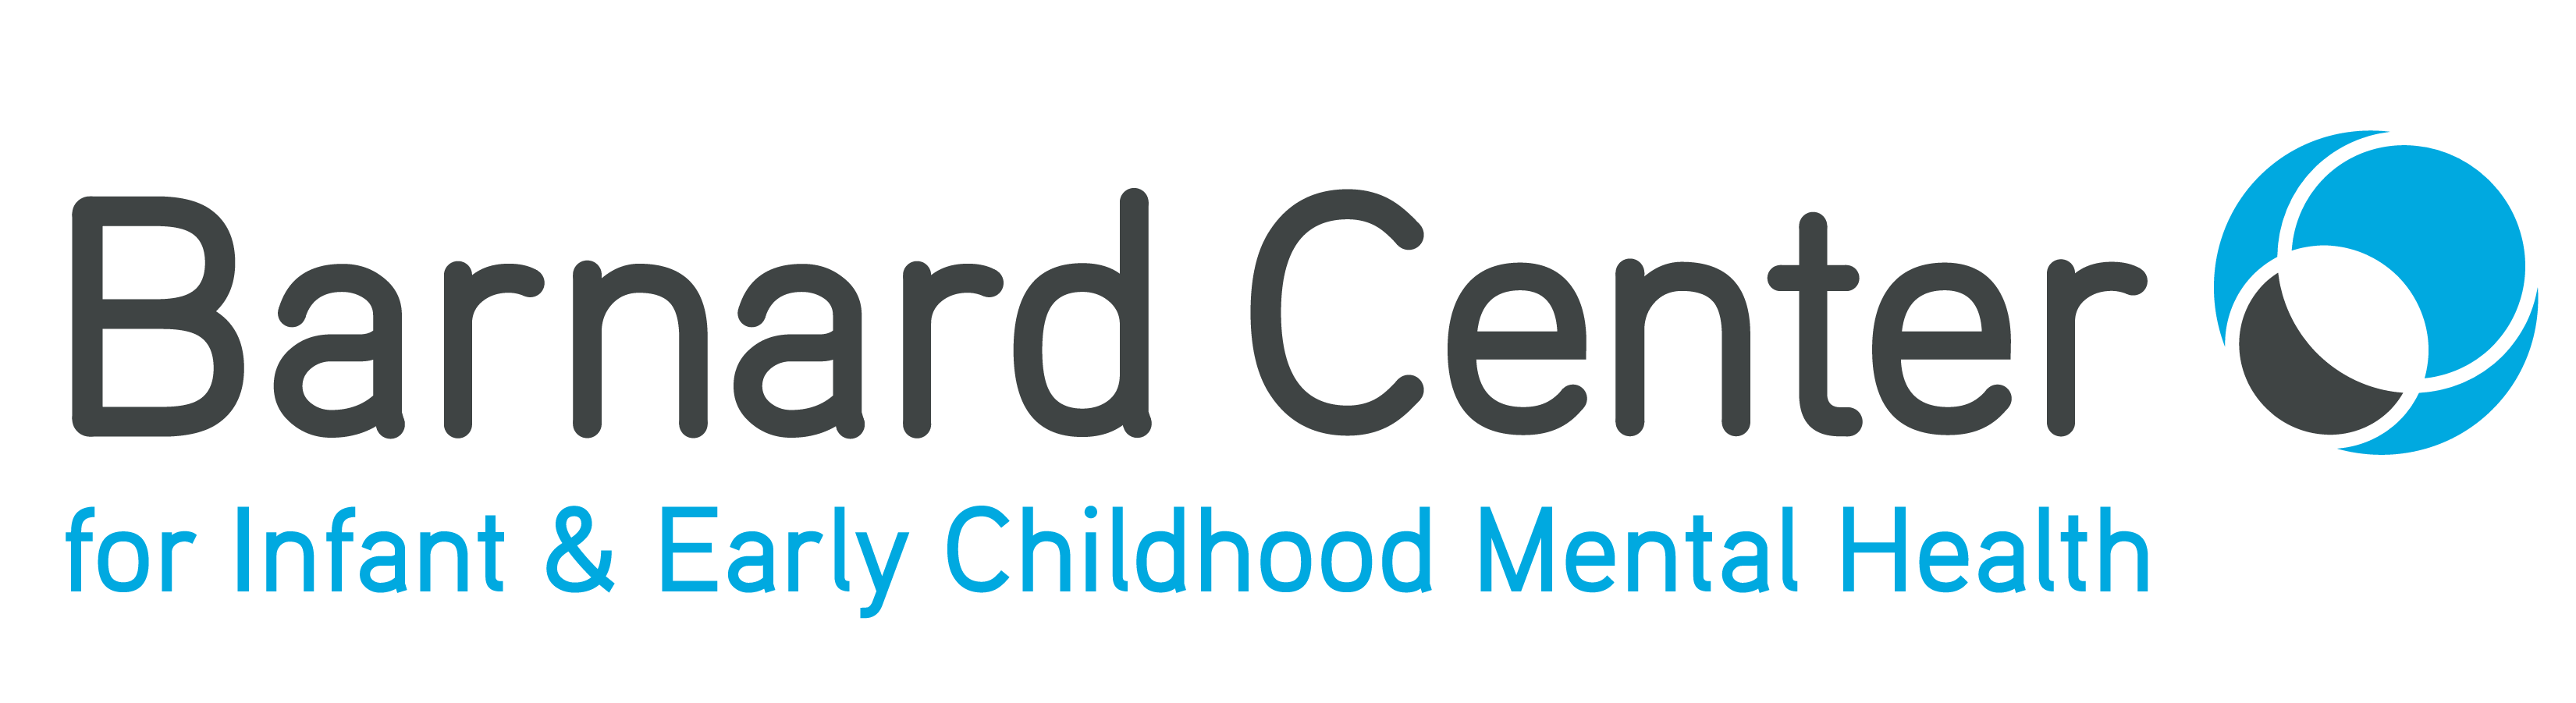 Barnard Center for Infant Mental Health and Development logo